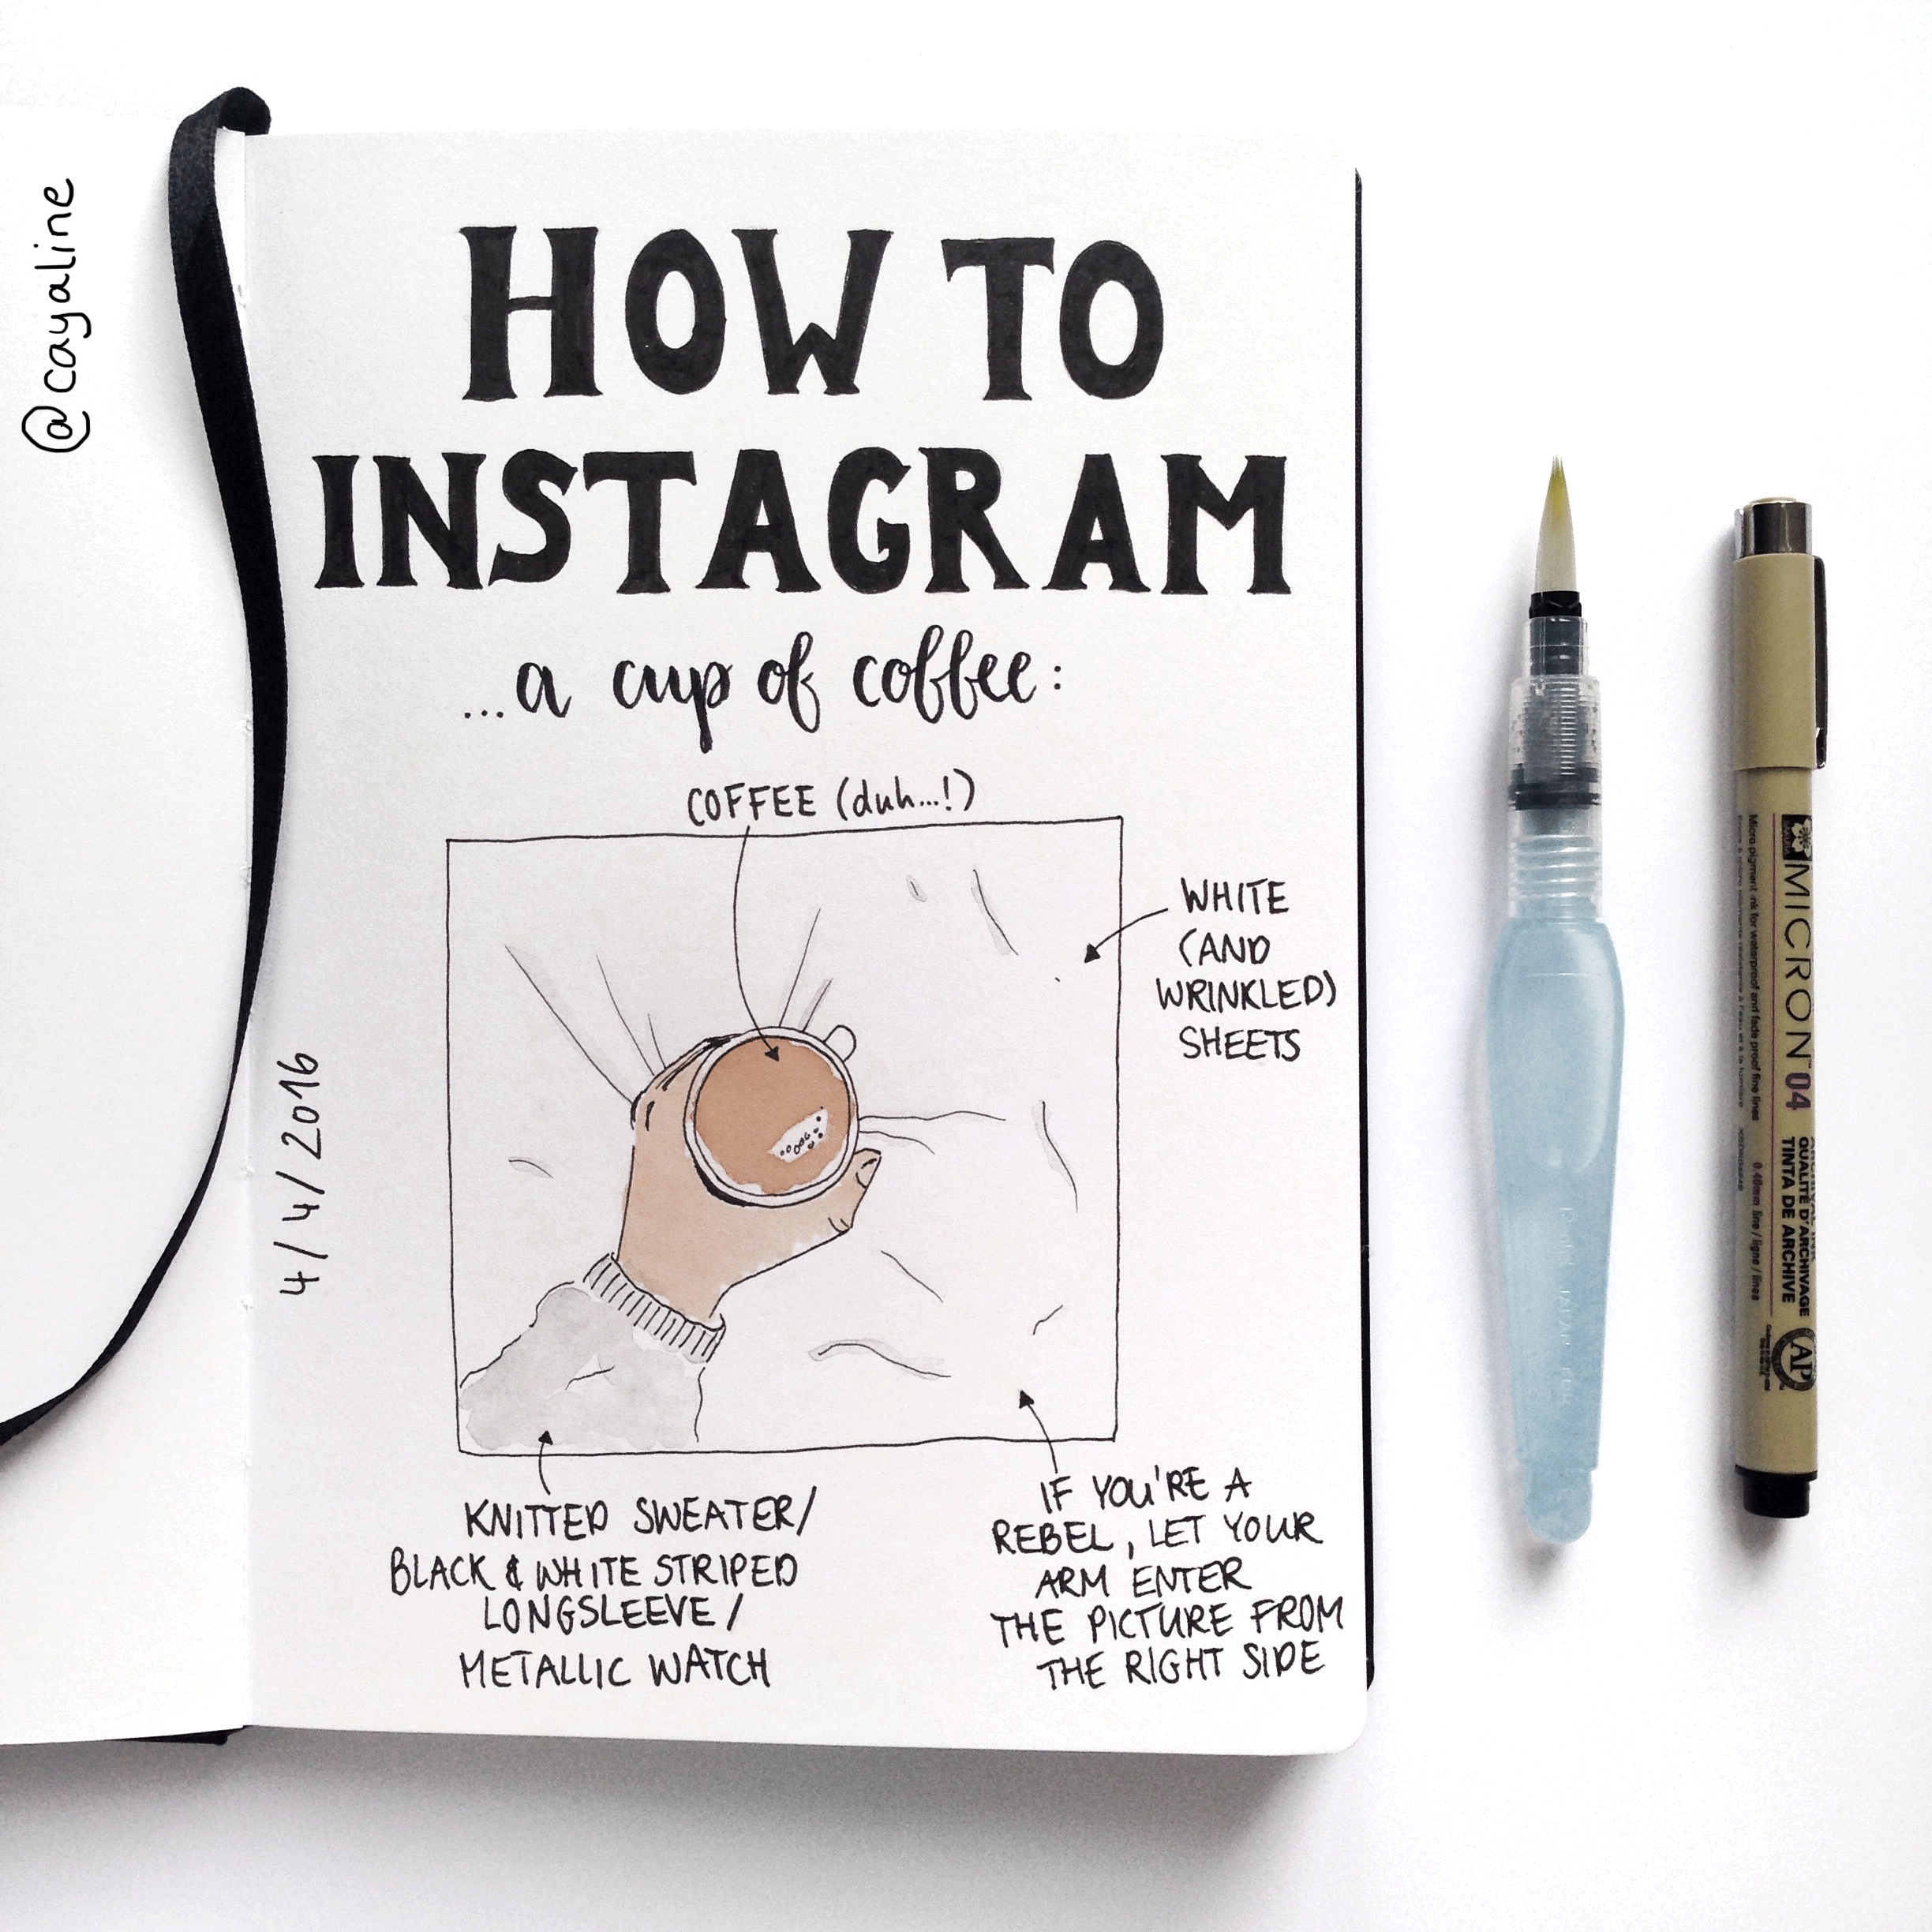 How to Instagram a cup of coffee | Carolin Hohberg